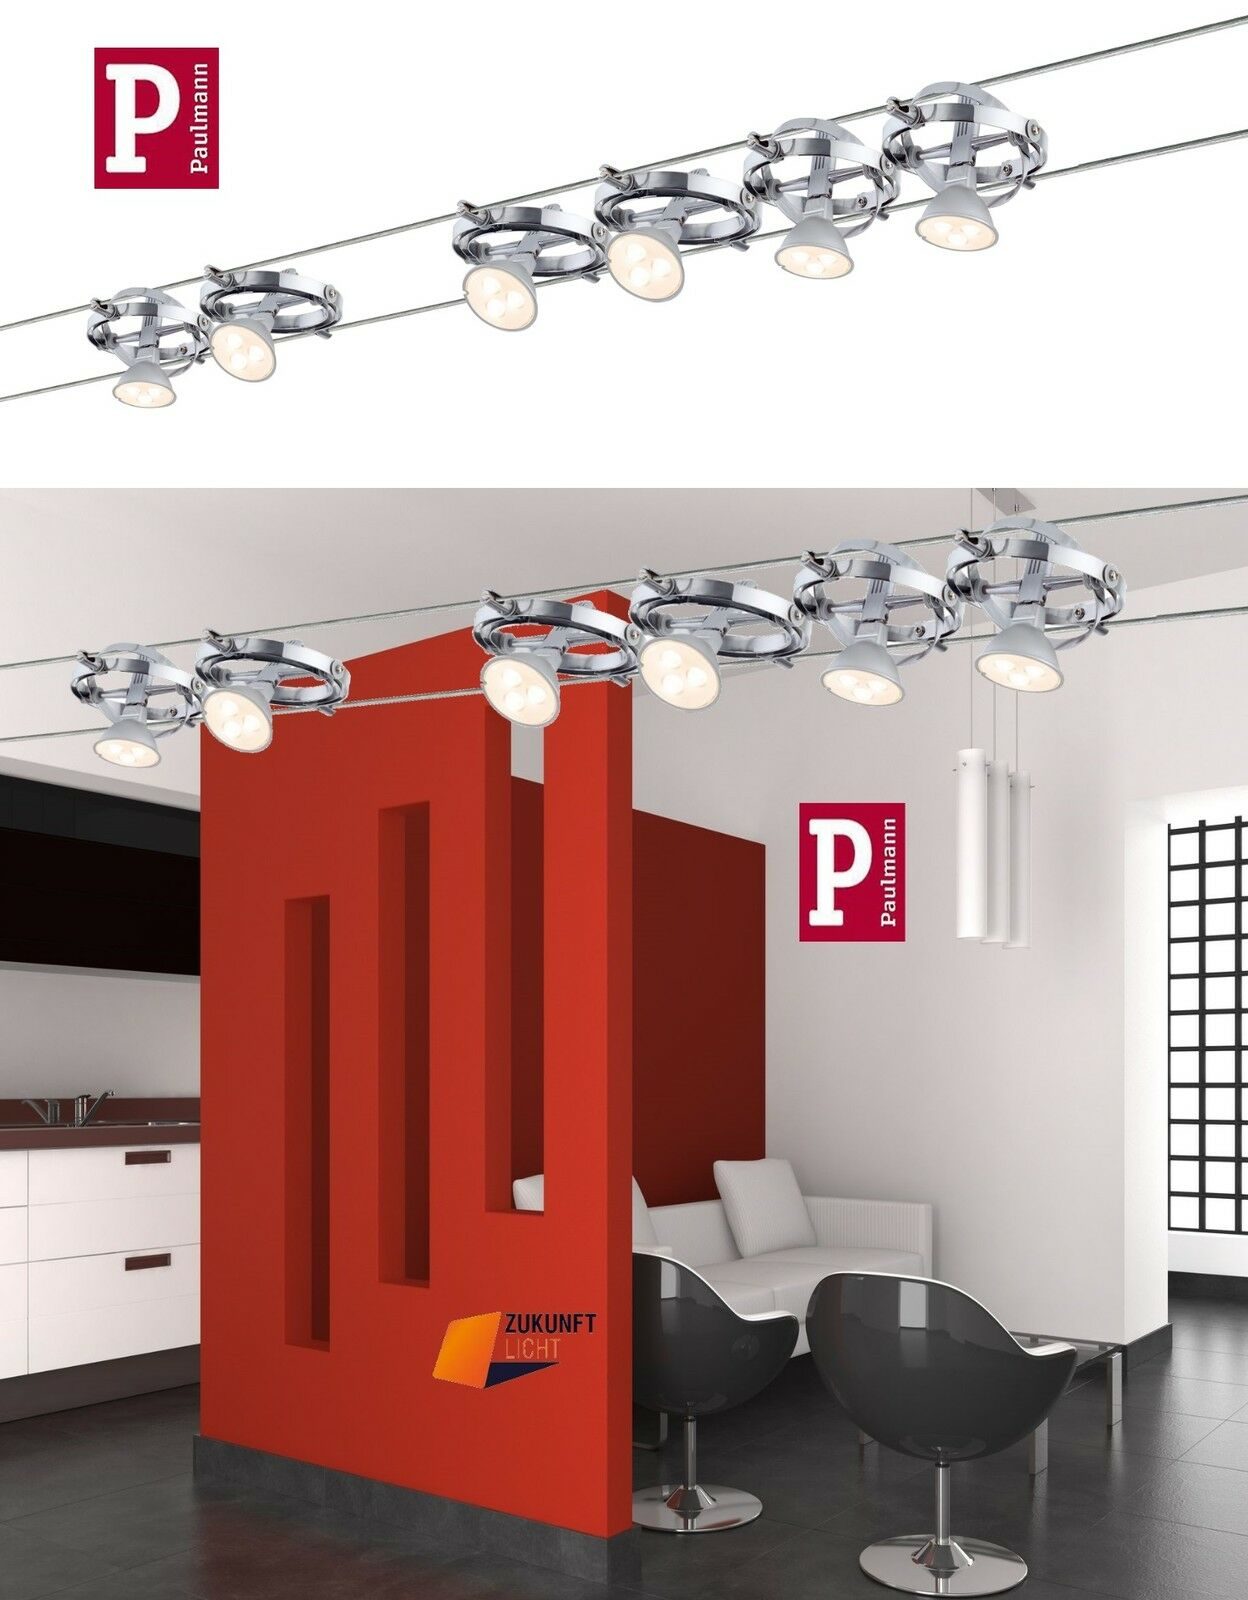 PAULMANN LED SEILSYSTEM CARDAN CHROM WEISS 6x4W 12V NEUSTE LED TECHNIK ART 94128